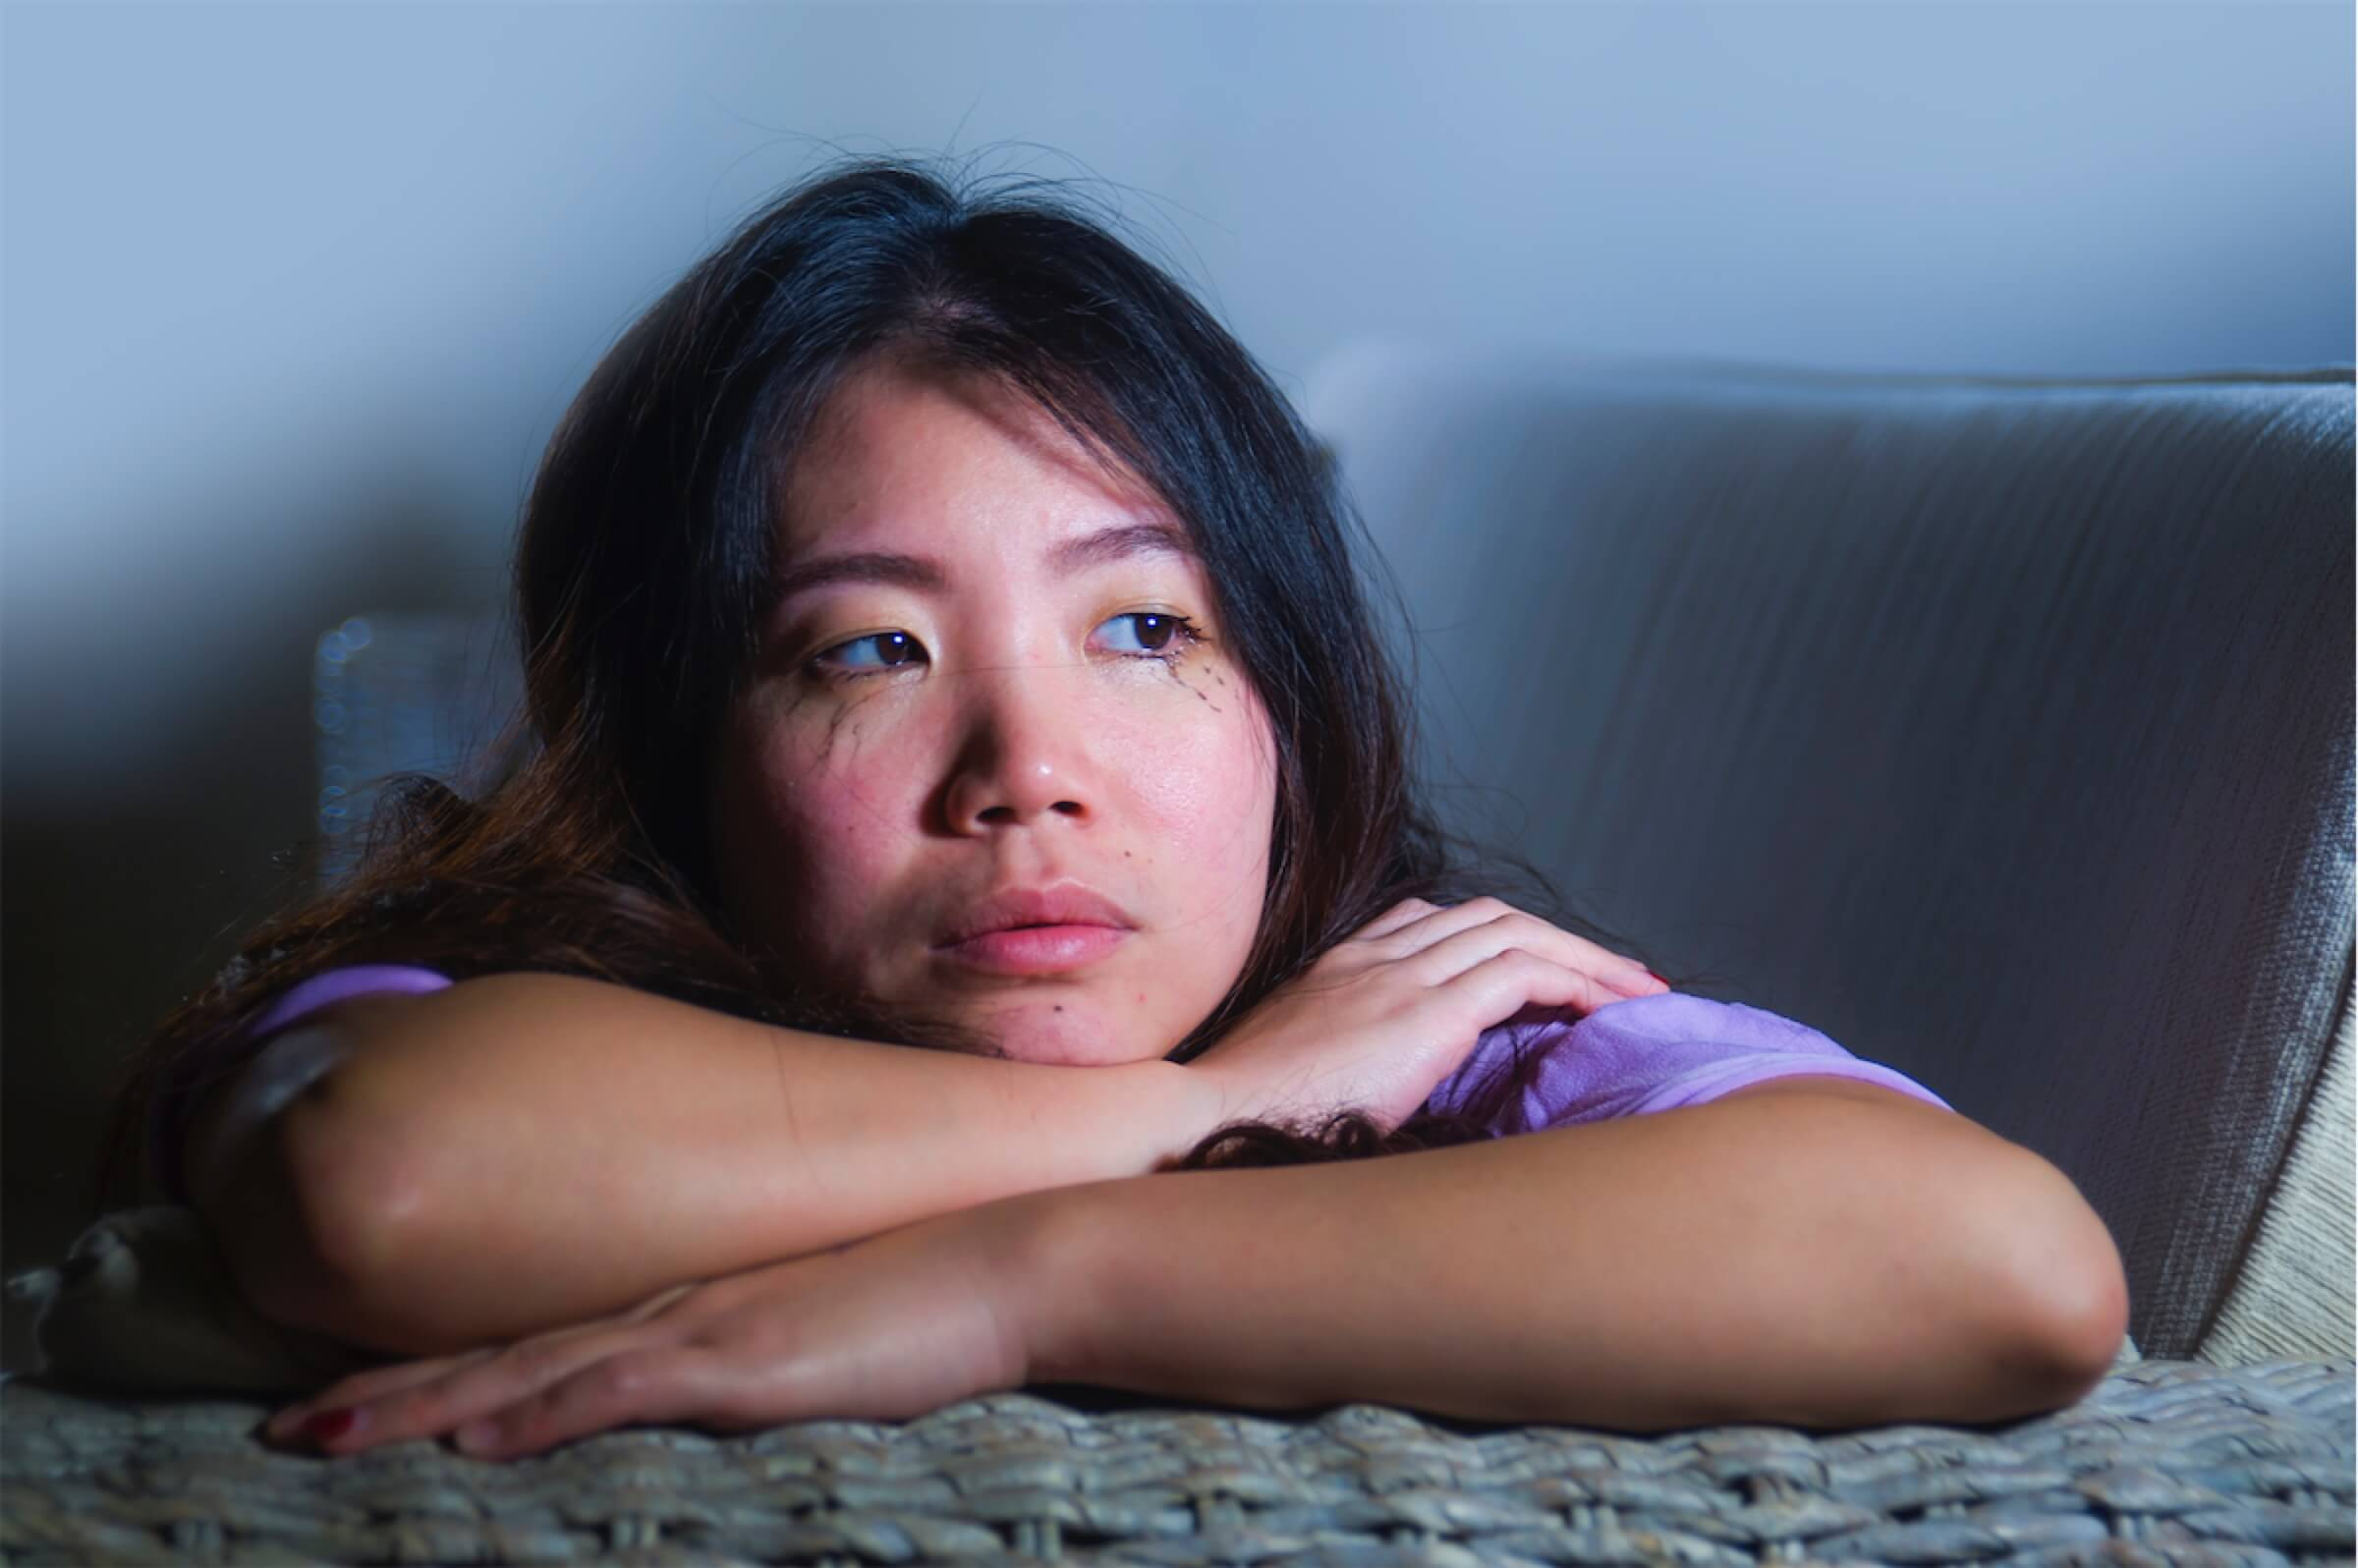 Postnatal depression: What are the signs and how is it treated?